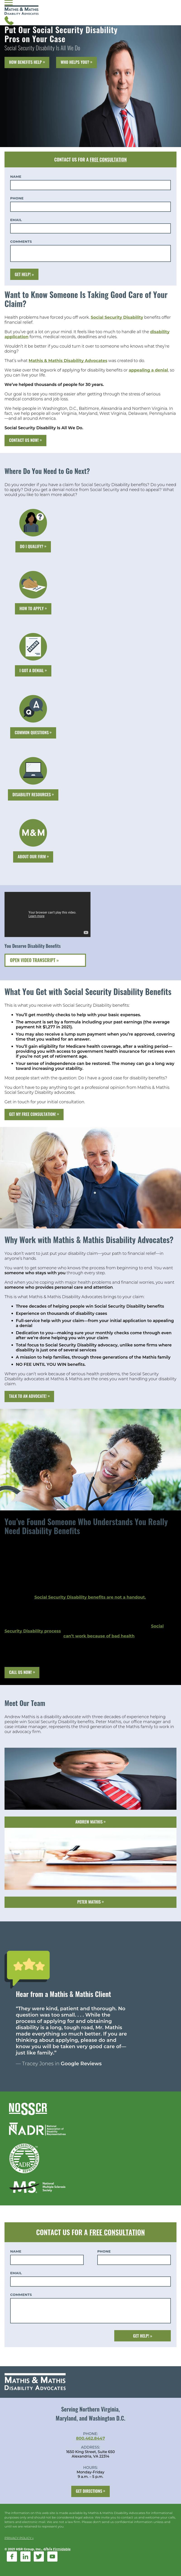 Mathis & Mathis, The Disability Advocates - Alexandria VA Lawyers